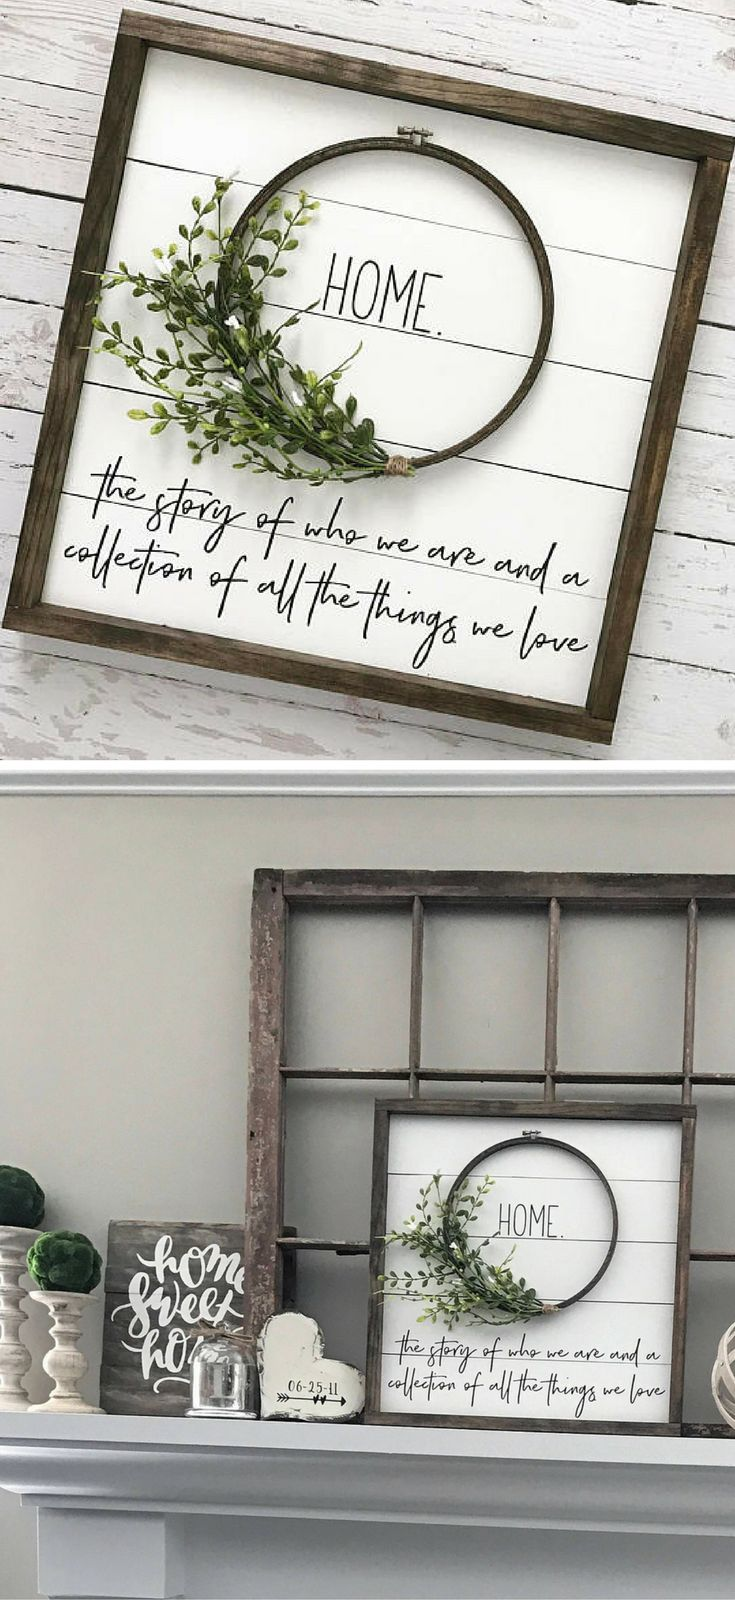 This sign is perfection - Home.. The story of who we are and a collection of all the things we love! Framed Shiplap Sign, Shiplap Wreath sign, Fixer Upper Sign, Farmhouse Sign, Farmhouse Decor, Fixer Upper Decor, Home decor Sign, gallery wall, Rustic sign, Rustic decor #ad